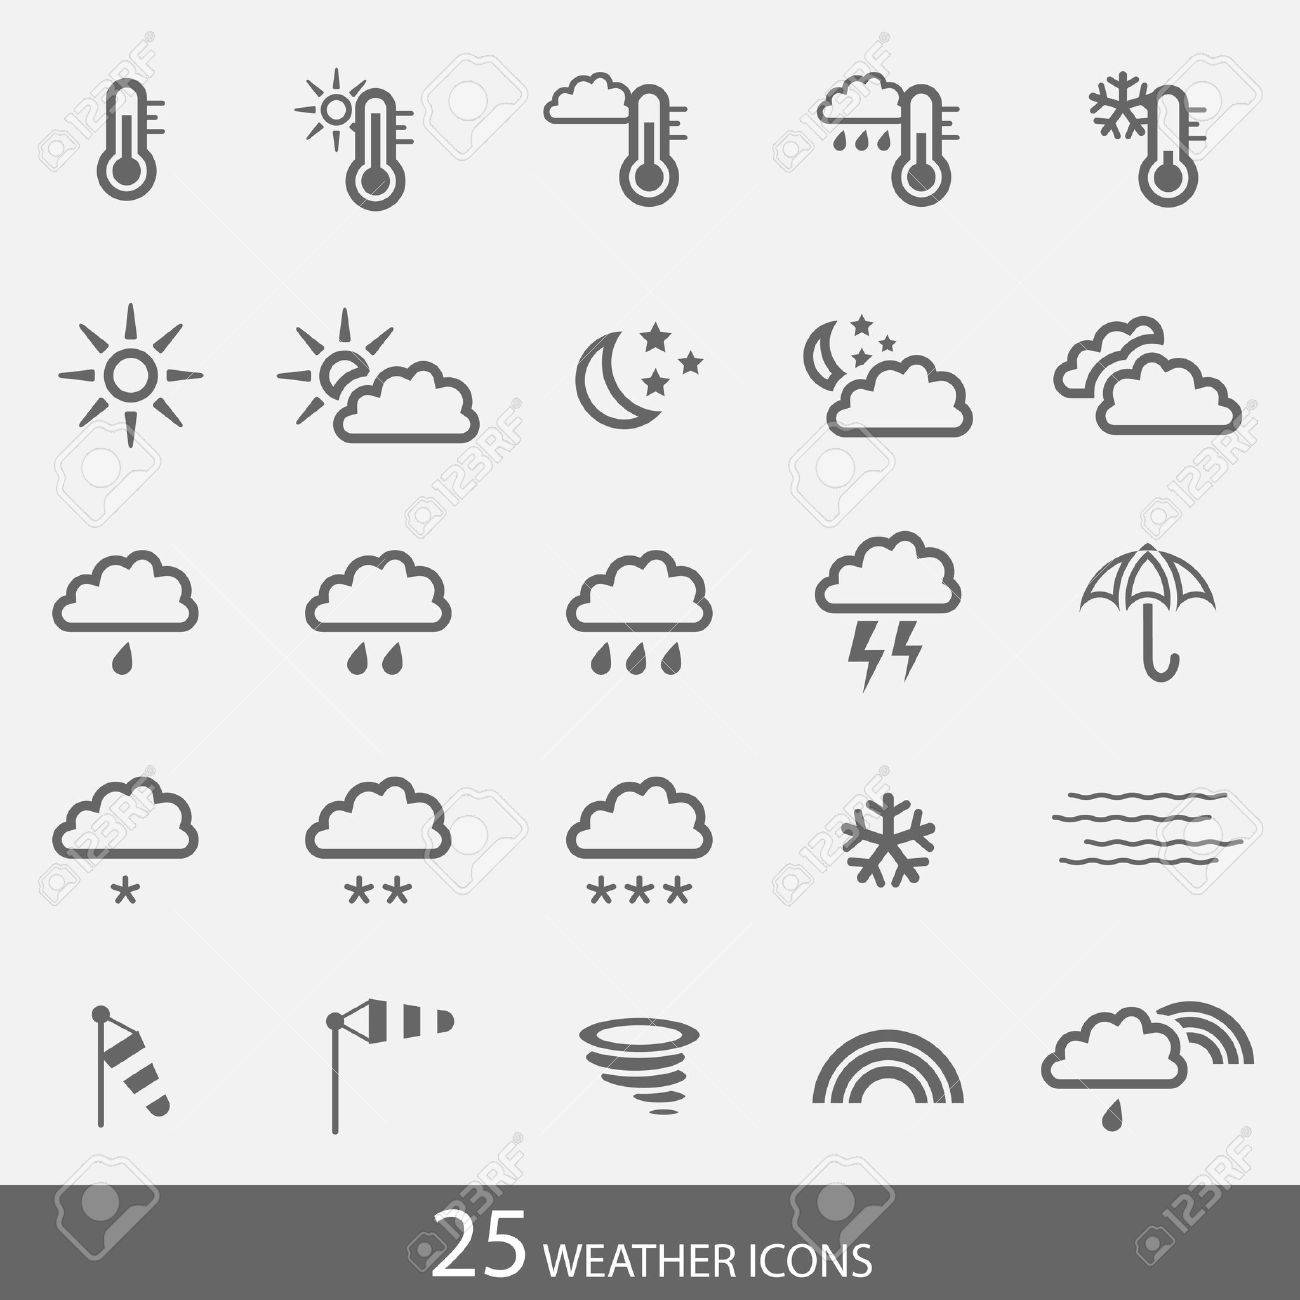 Set of 25 weather icons with stroke. Simple grey icons for web and applications. Stock Vector - 18045101